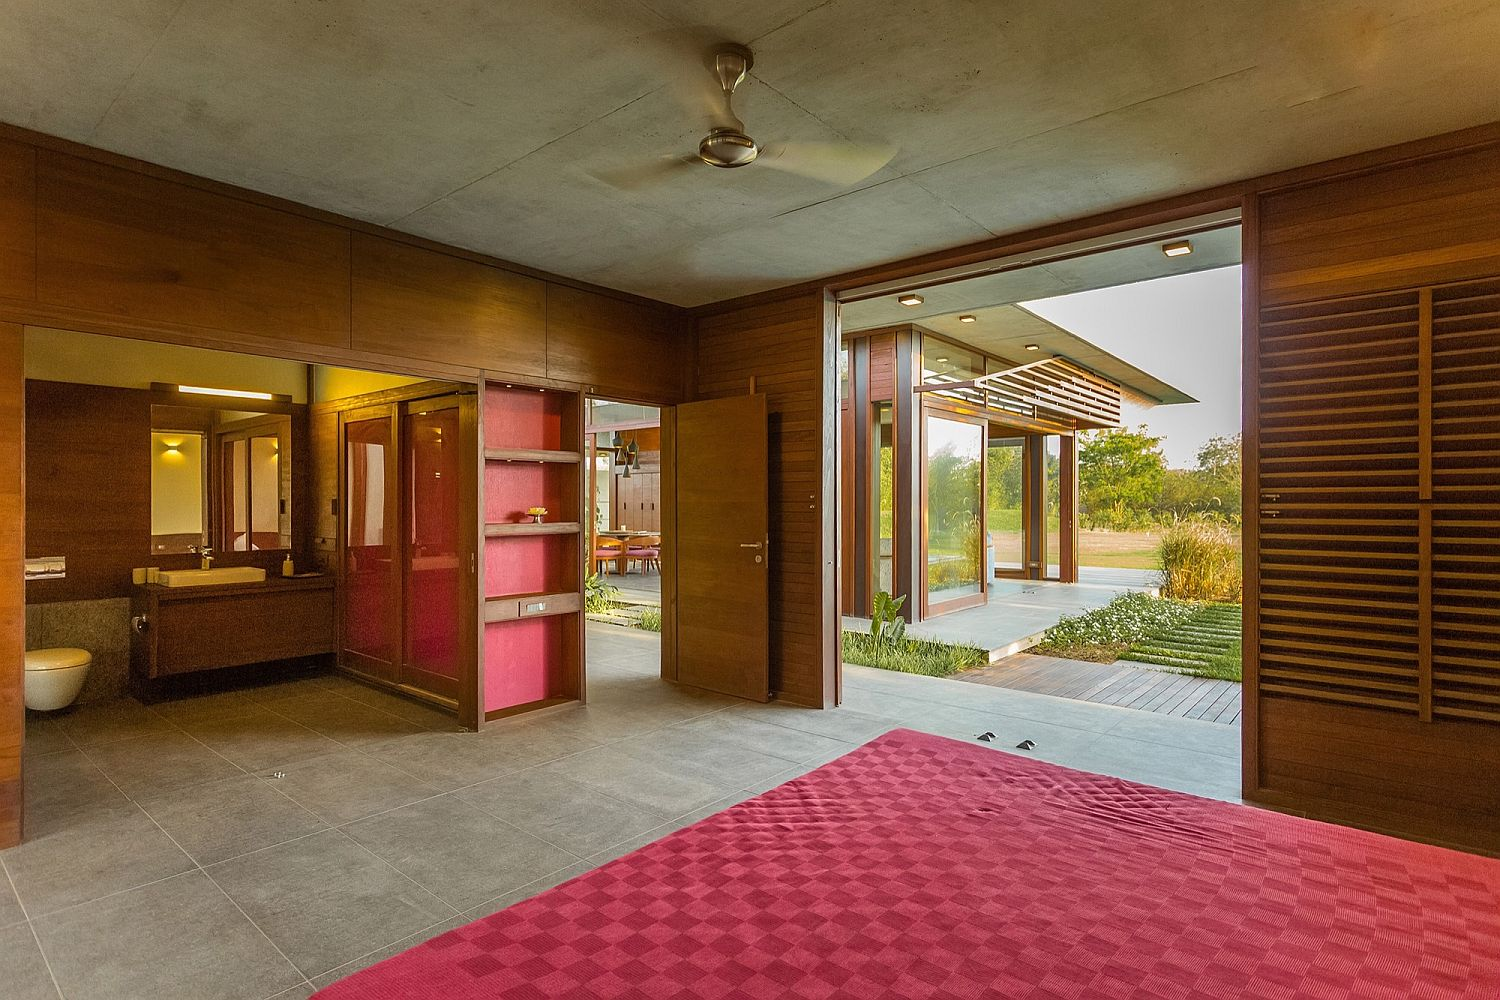 Carpet and curtains bring red into the resort-style retreat